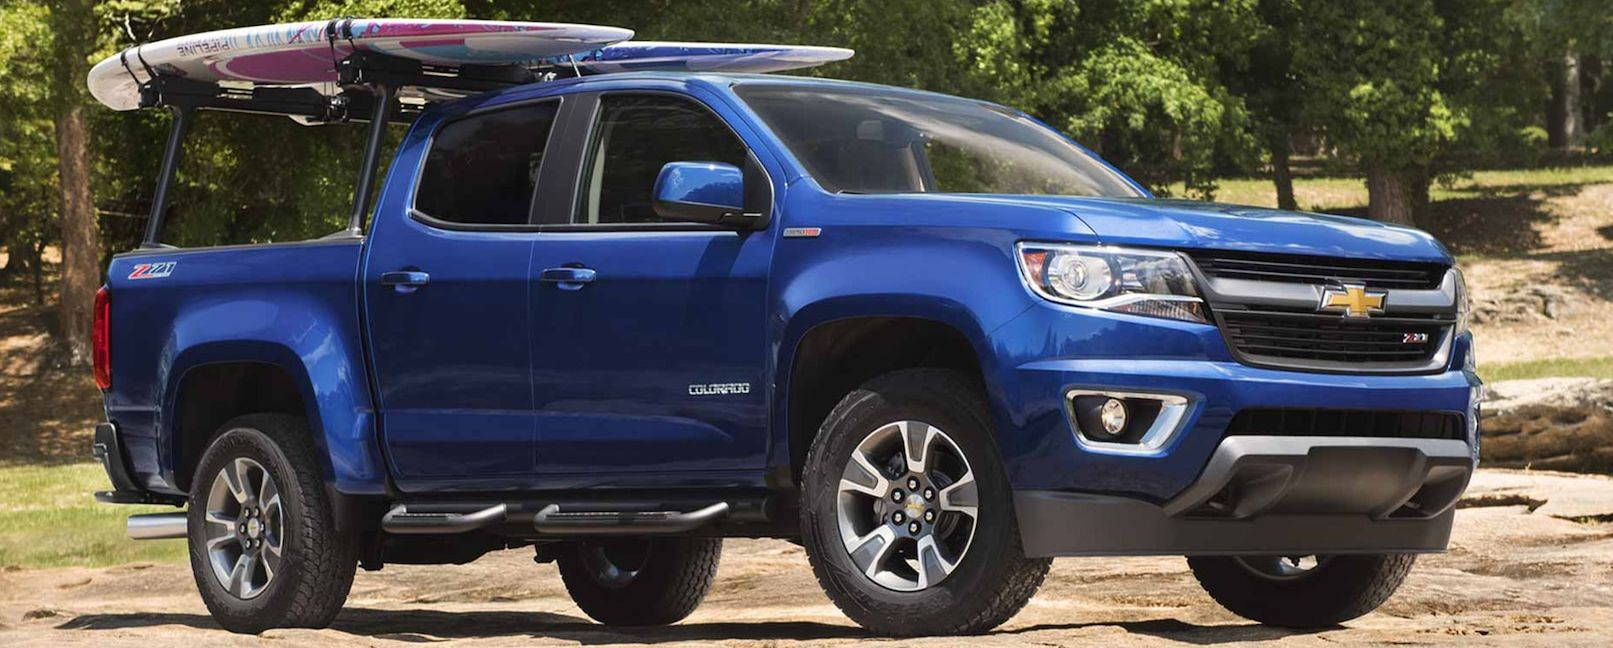 ted for sterling new inventory image va tahoe premier sport sale chevrolet stock britt in utility stk